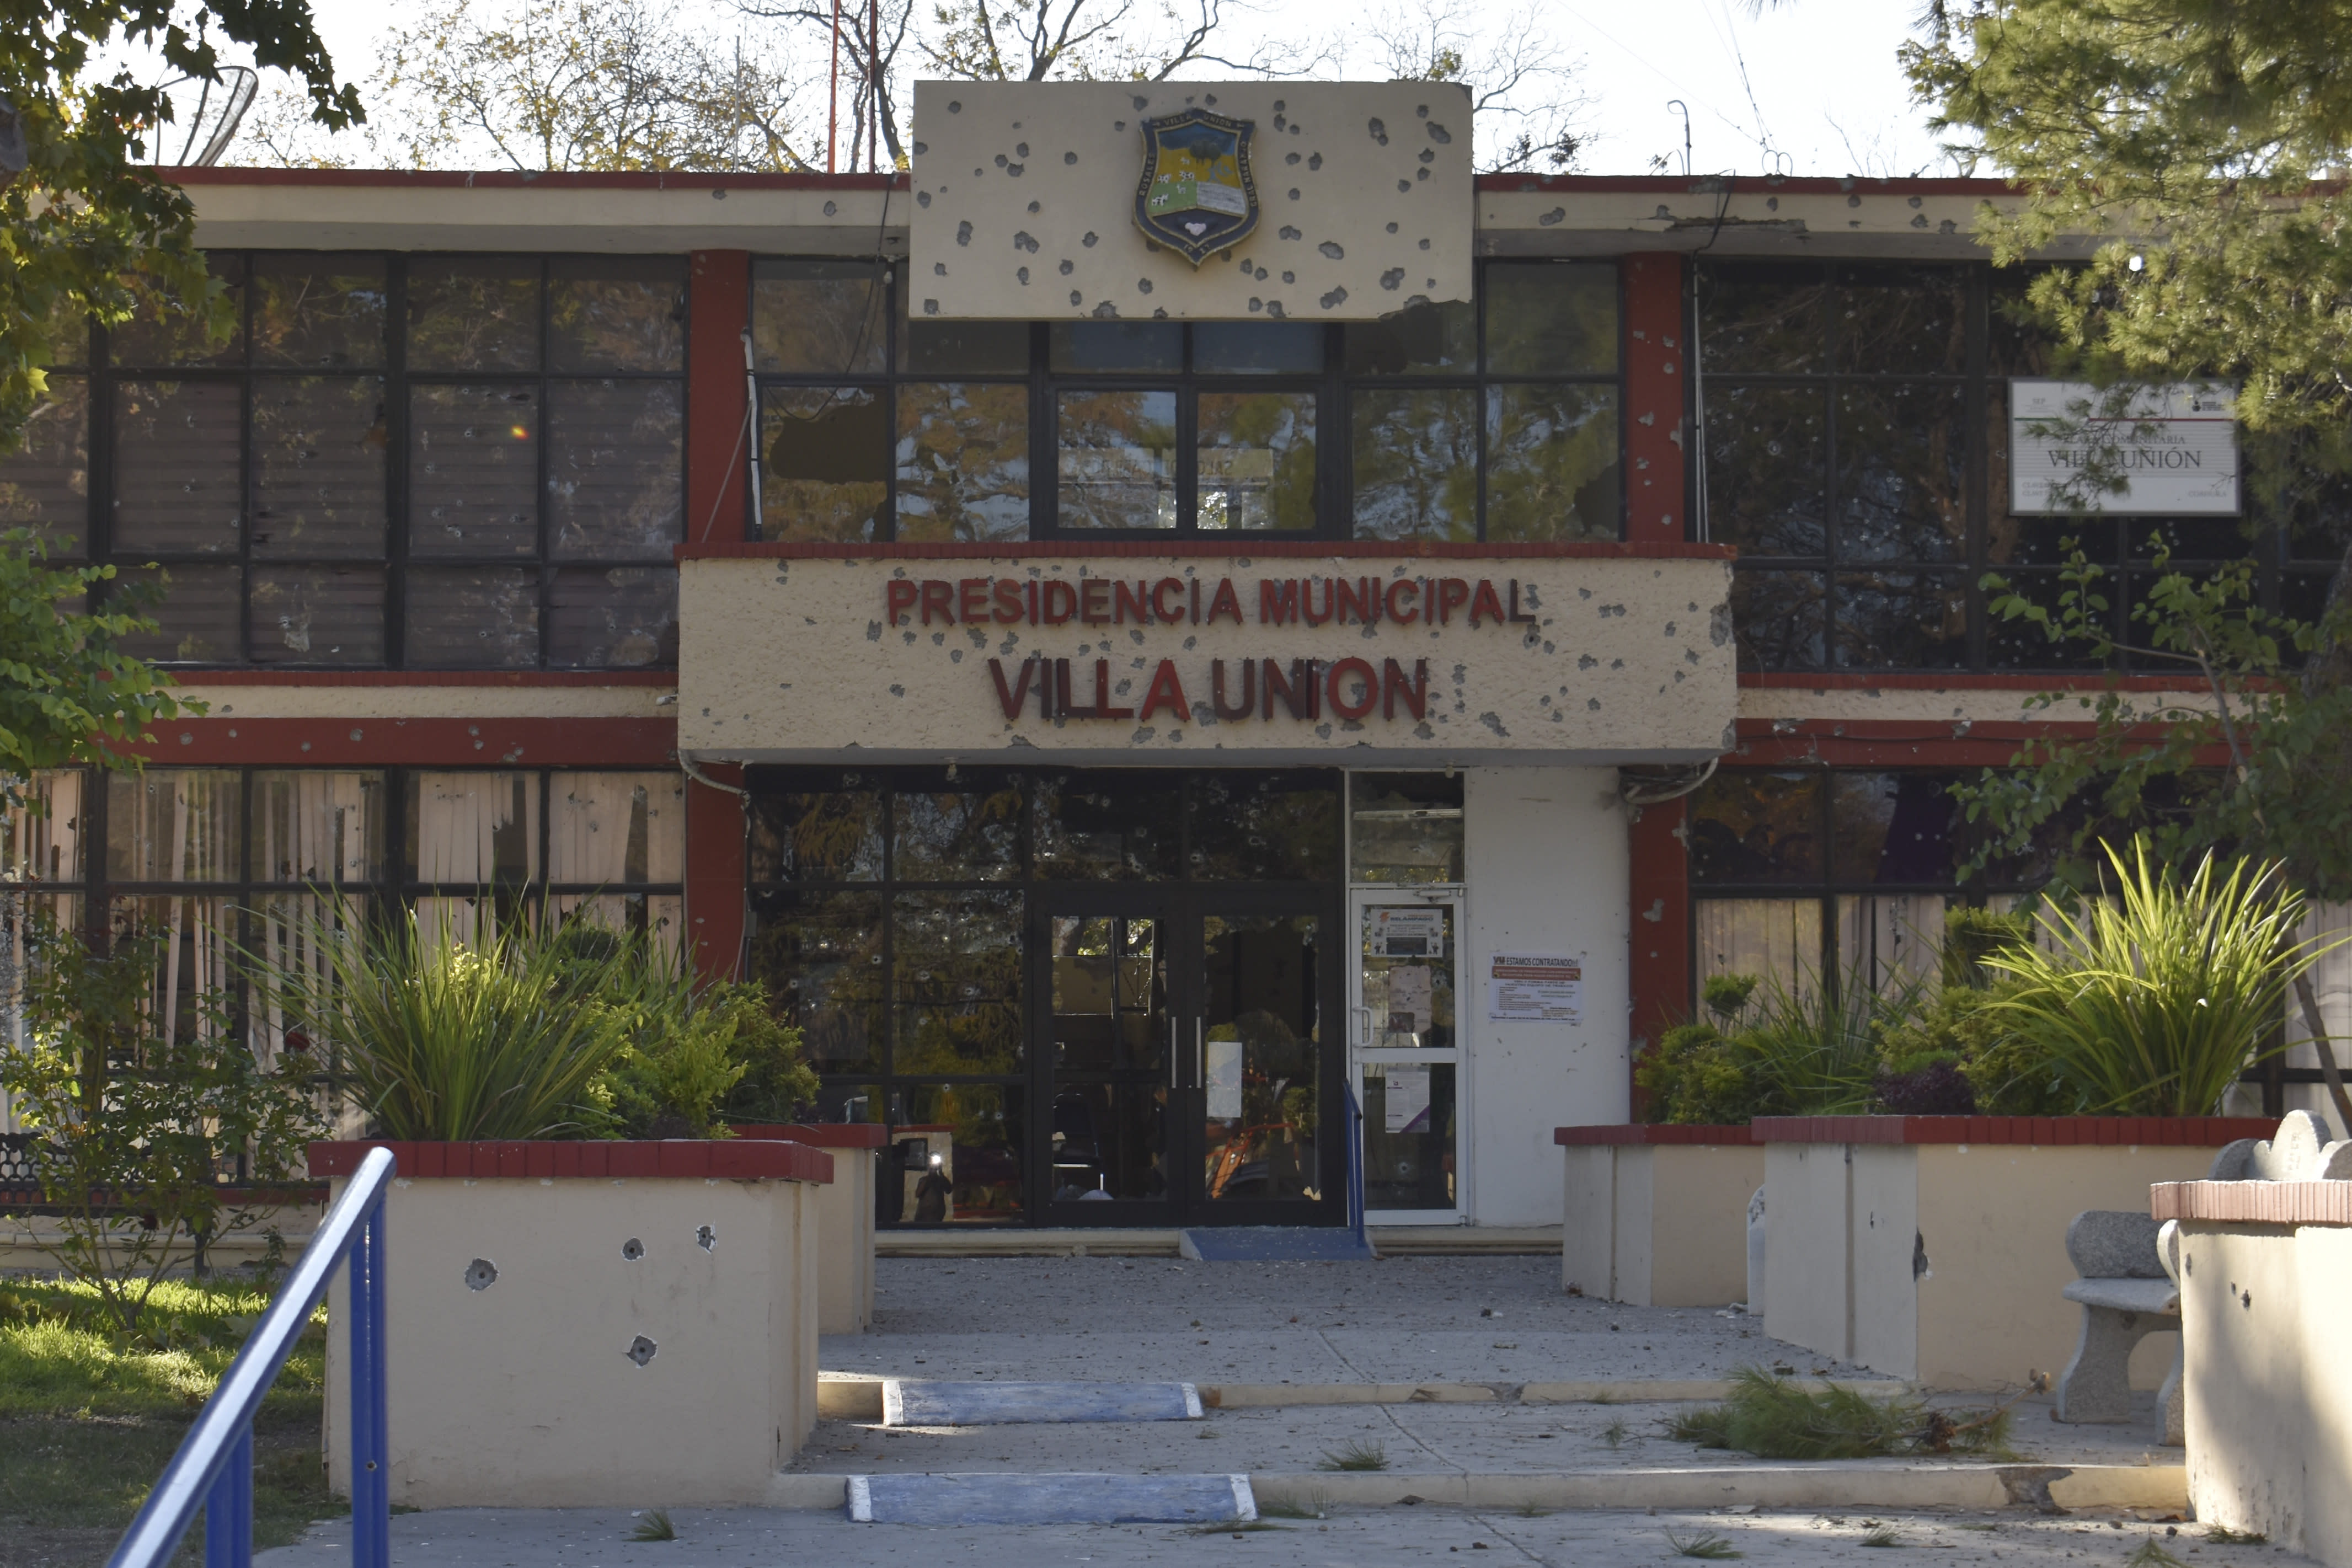 The City Hall of Villa Union is riddled with bullet holes after a gun battle between Mexican security forces and suspected cartel gunmen, Saturday, Nov. 30, 2019. At least 14 people were killed, four of them police officers, after an armed group in a convoy of trucks stormed the town, in Coahuila state, prompting security forces to intervene, state Gov. Miguel Riquelme Solis said. (AP Photo/Gerardo Sanchez)